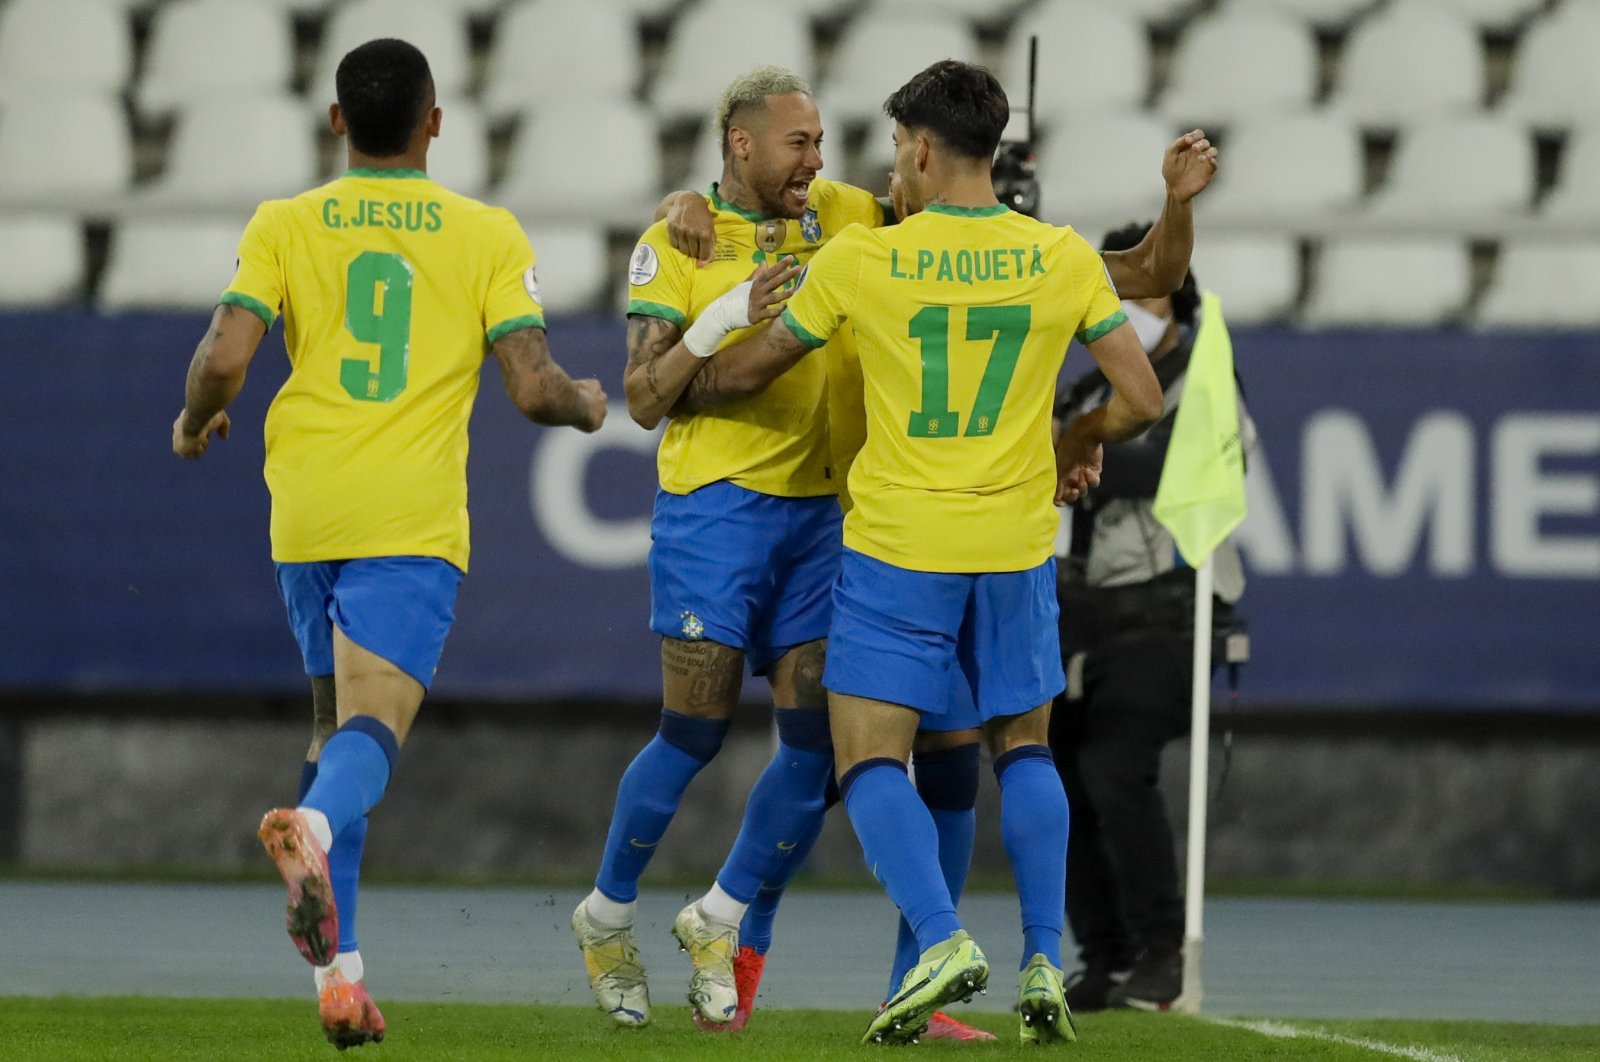 Brazil's Lucas Paqueta celebrates with teammate Neymar after scoring the only goal during a Copa America quarterfinal football match against Chile at the Nilton Santos stadium in Rio de Janeiro, Brazil, July 2, 2021. (AP Photo)